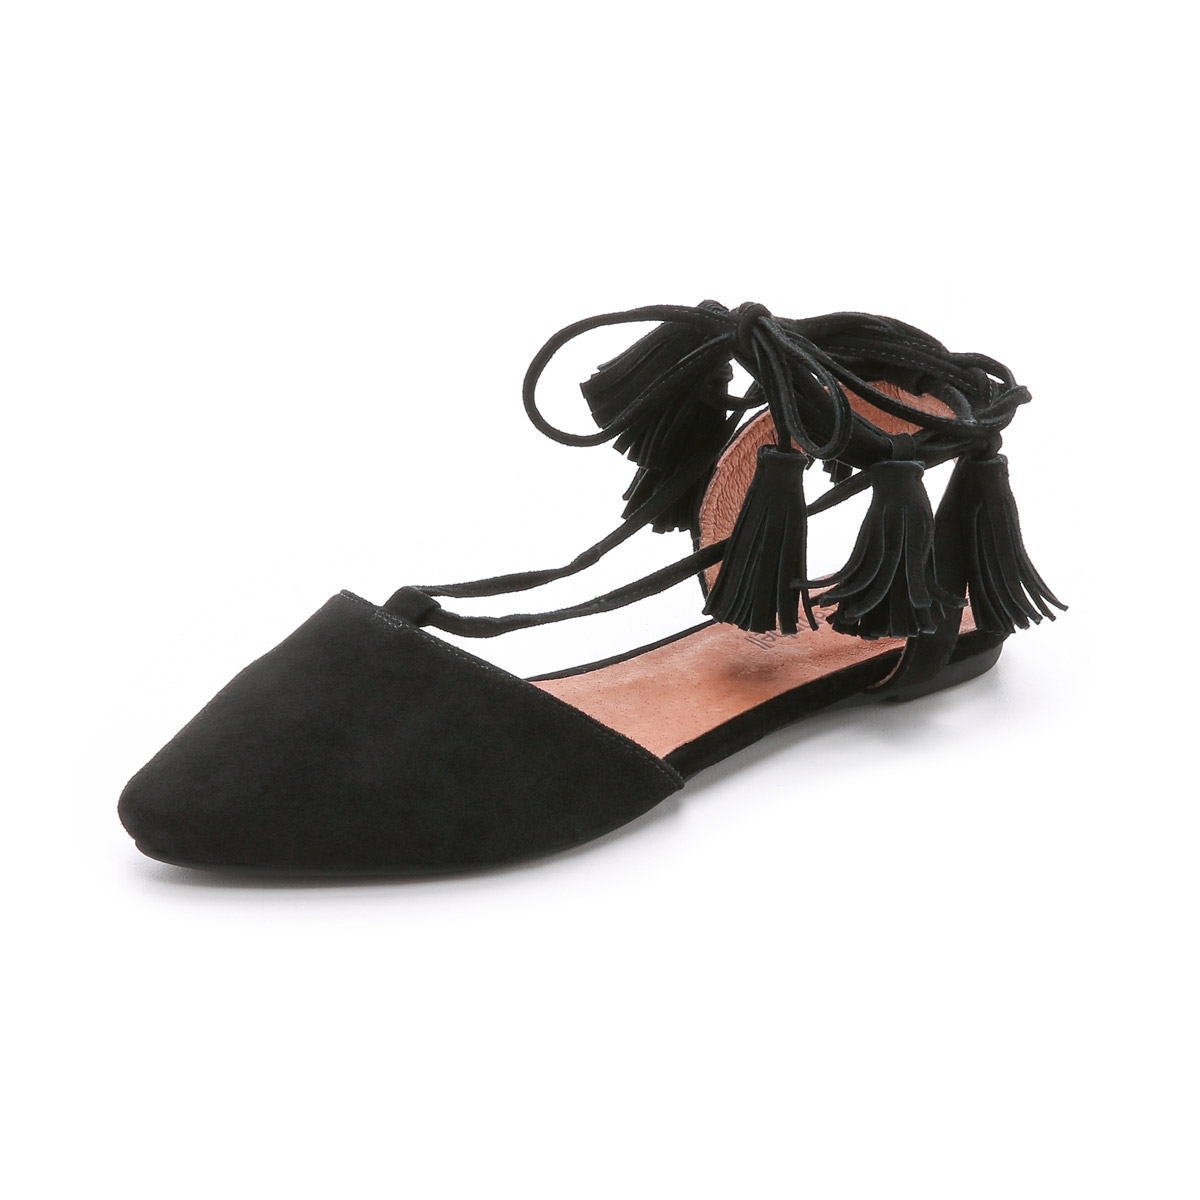 Amour Suede Flats